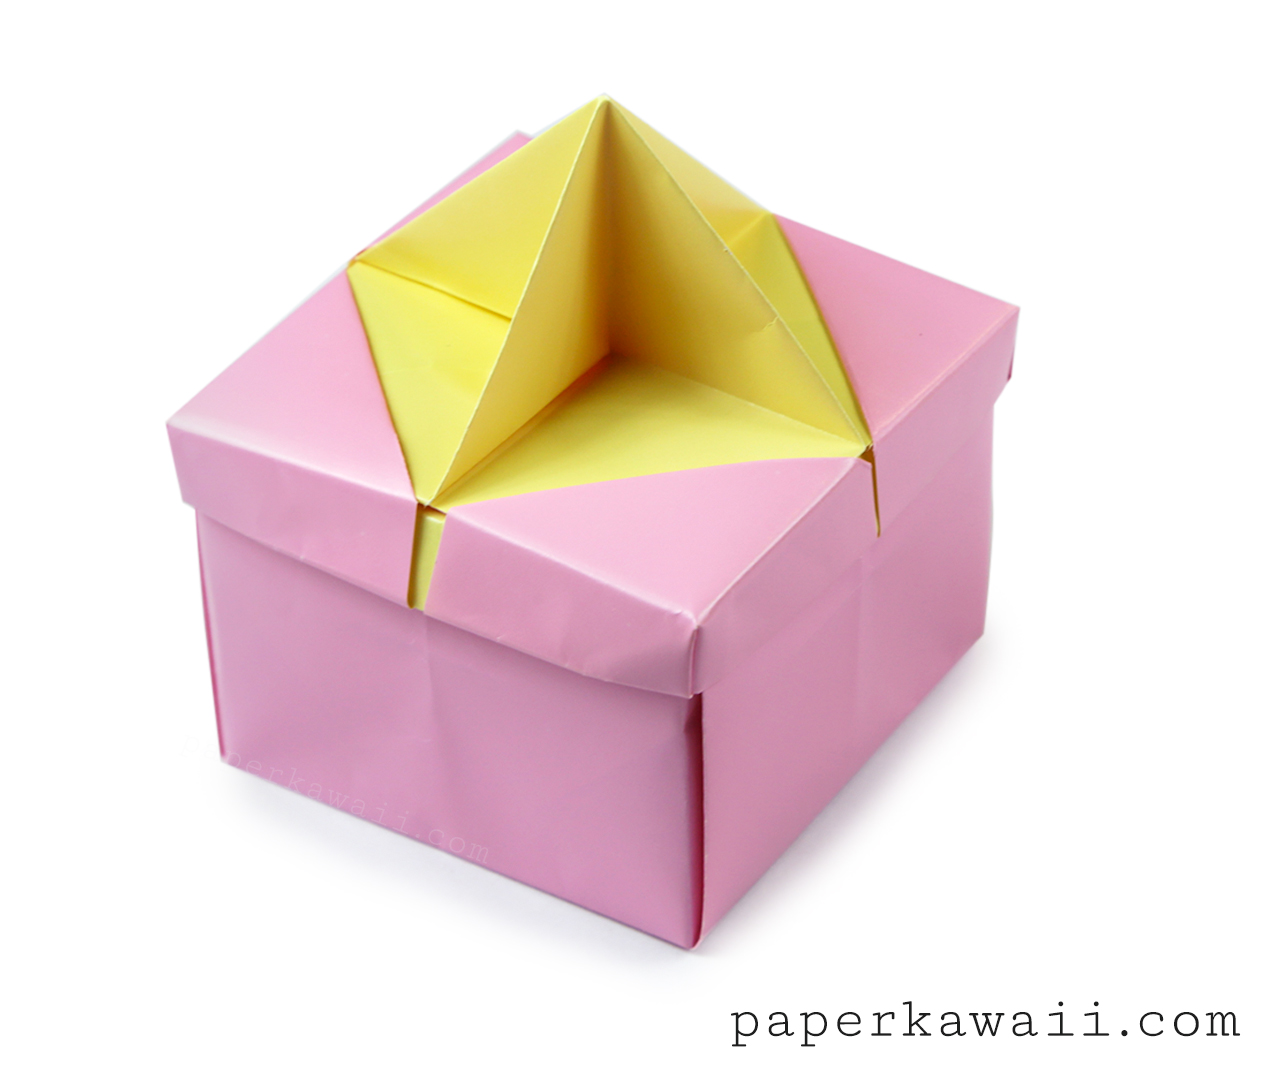 origami star handle insert for the frame lid paper kawaii